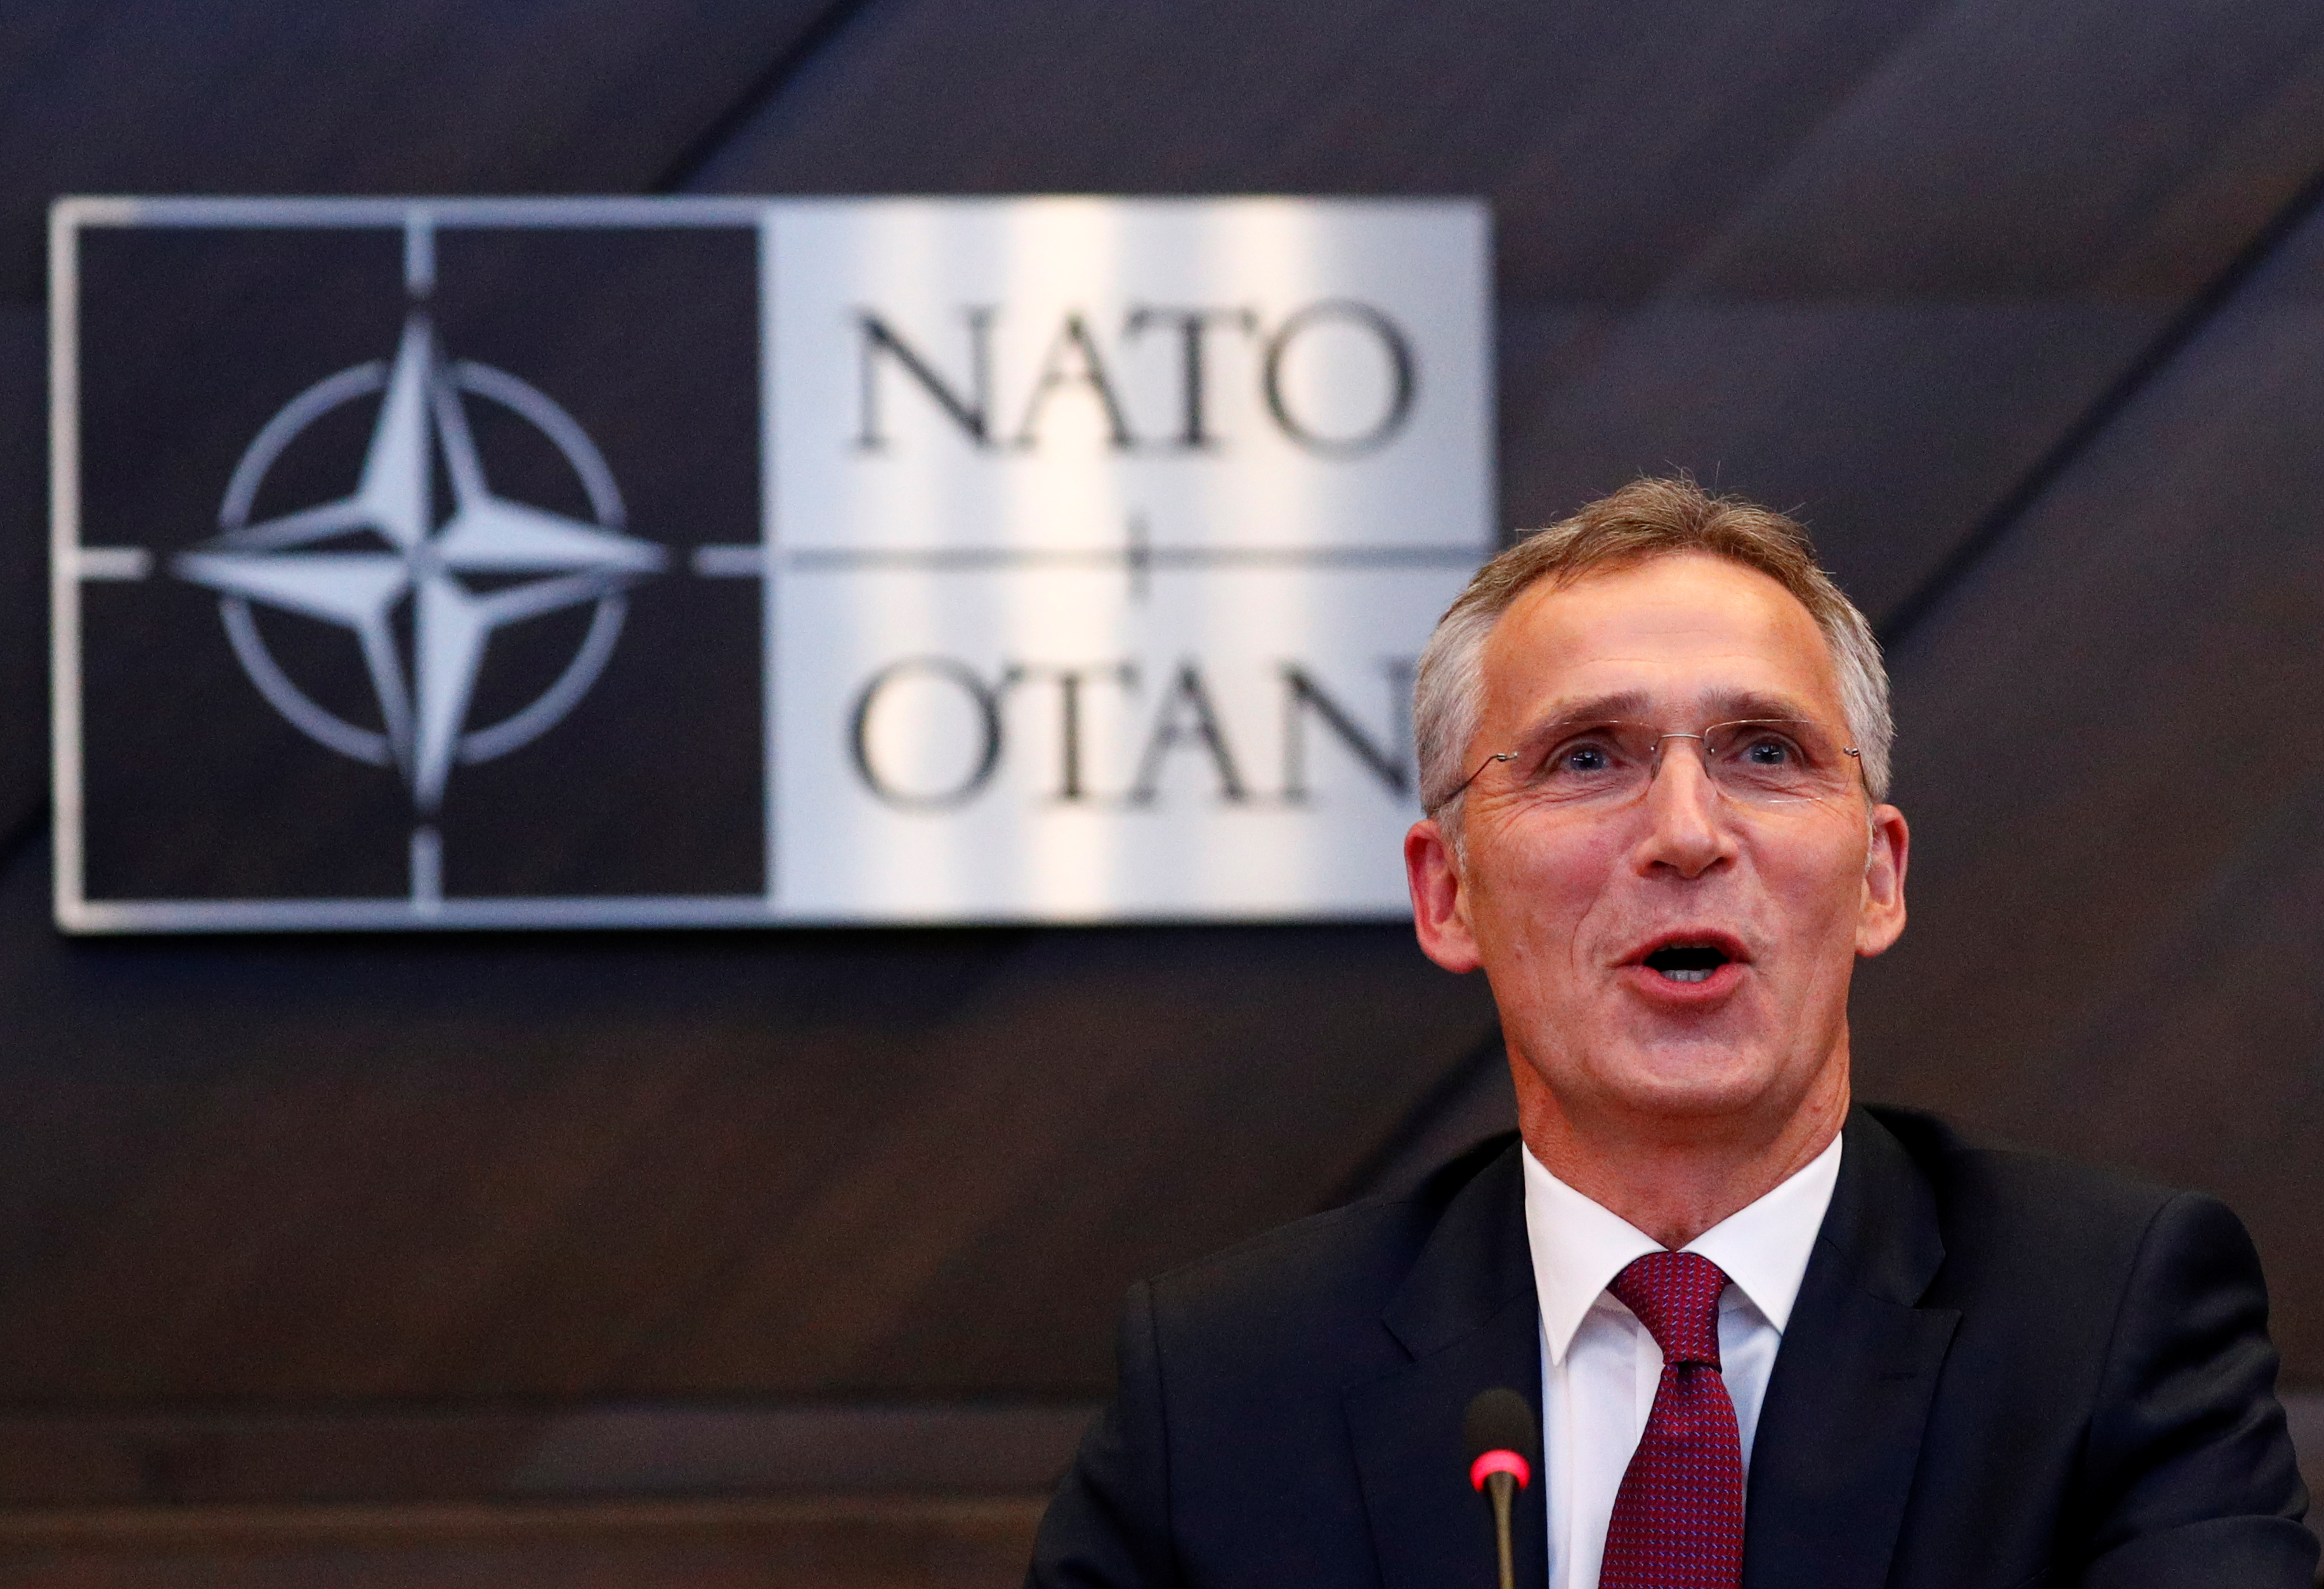 NATO Secretary General Jens Stoltenberg speaks during a NATO defense ministers meeting at the Alliance headquarters in Brussels, Belgium, Oct. 3, 2018.